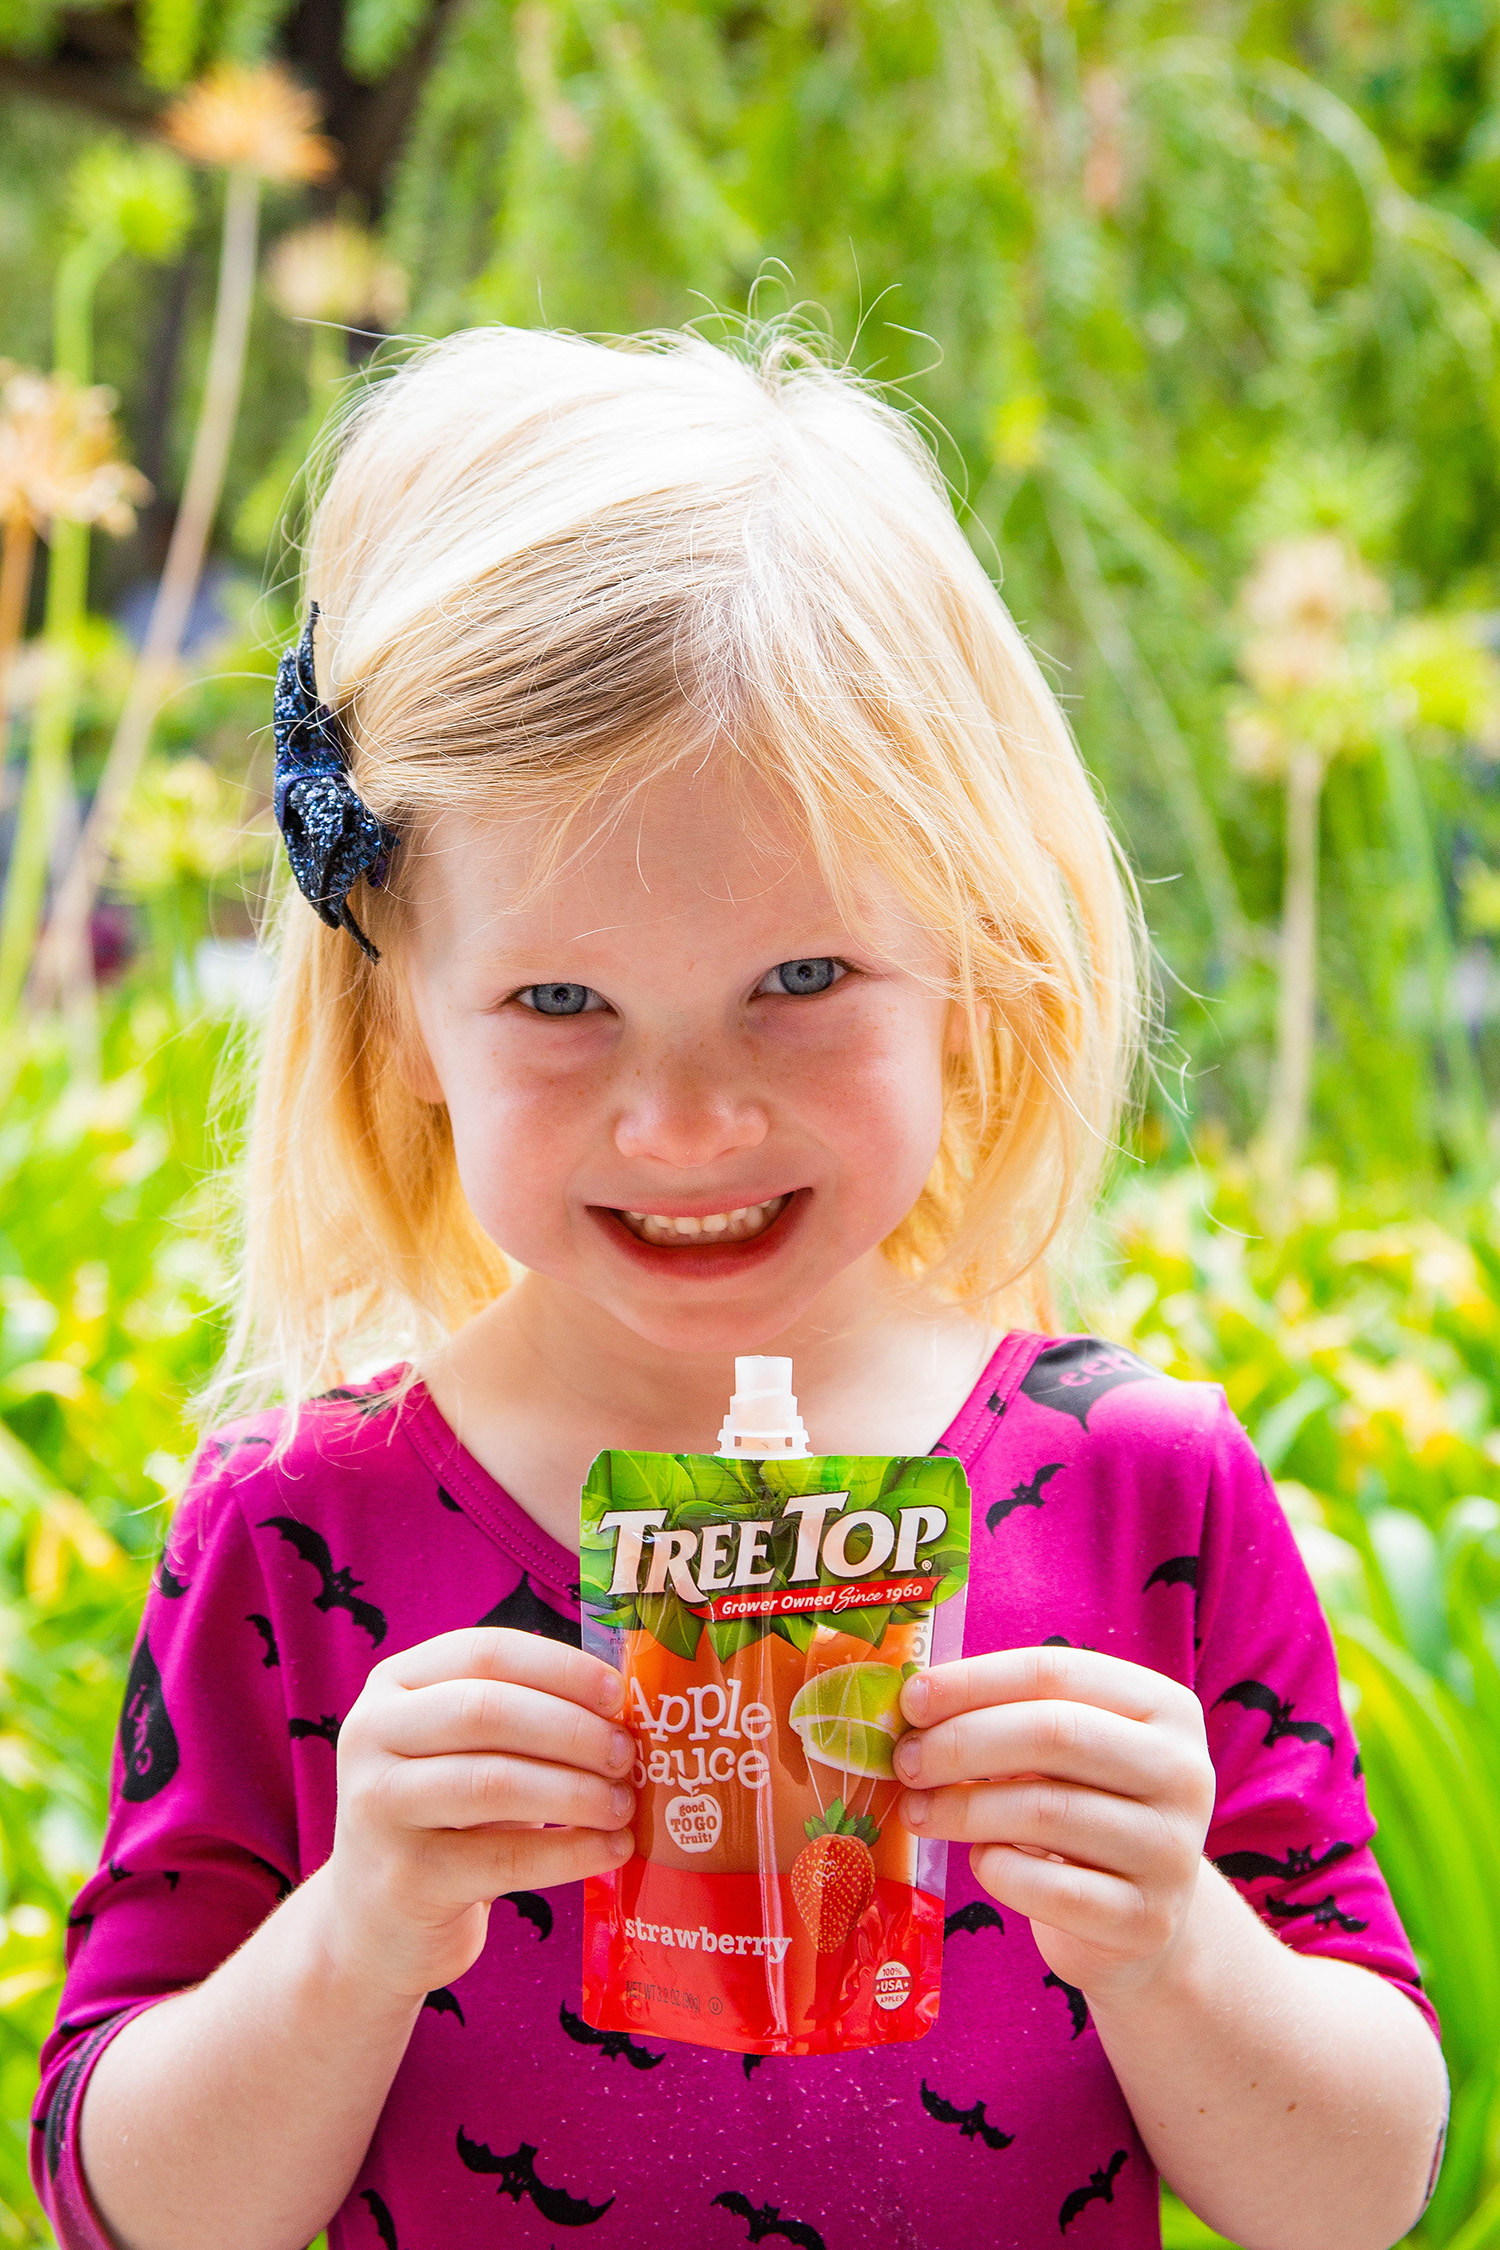 Looking for an easy Halloween craft or(non-candy based) classroom party snack? This easy Halloween craft using Tree Top Apple Sauce pouches is PERFECT!